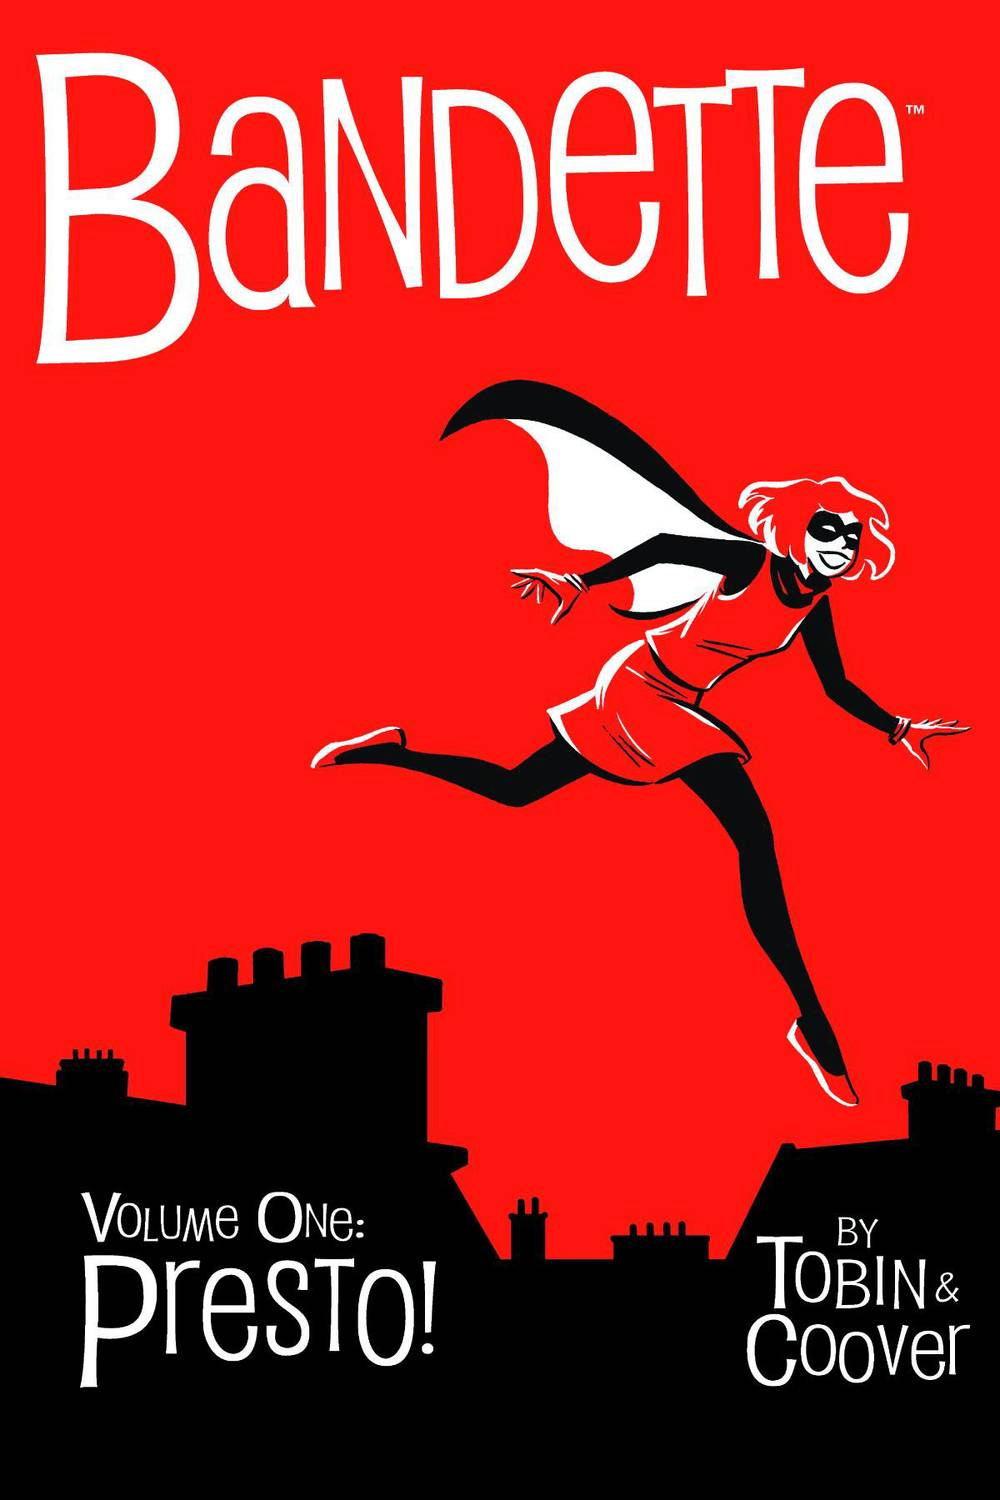 Bandette Volume 1: Presto! by Paul Tobin & Colleen Coover (Comic/Graphic Novel) Amazon | Goodreads